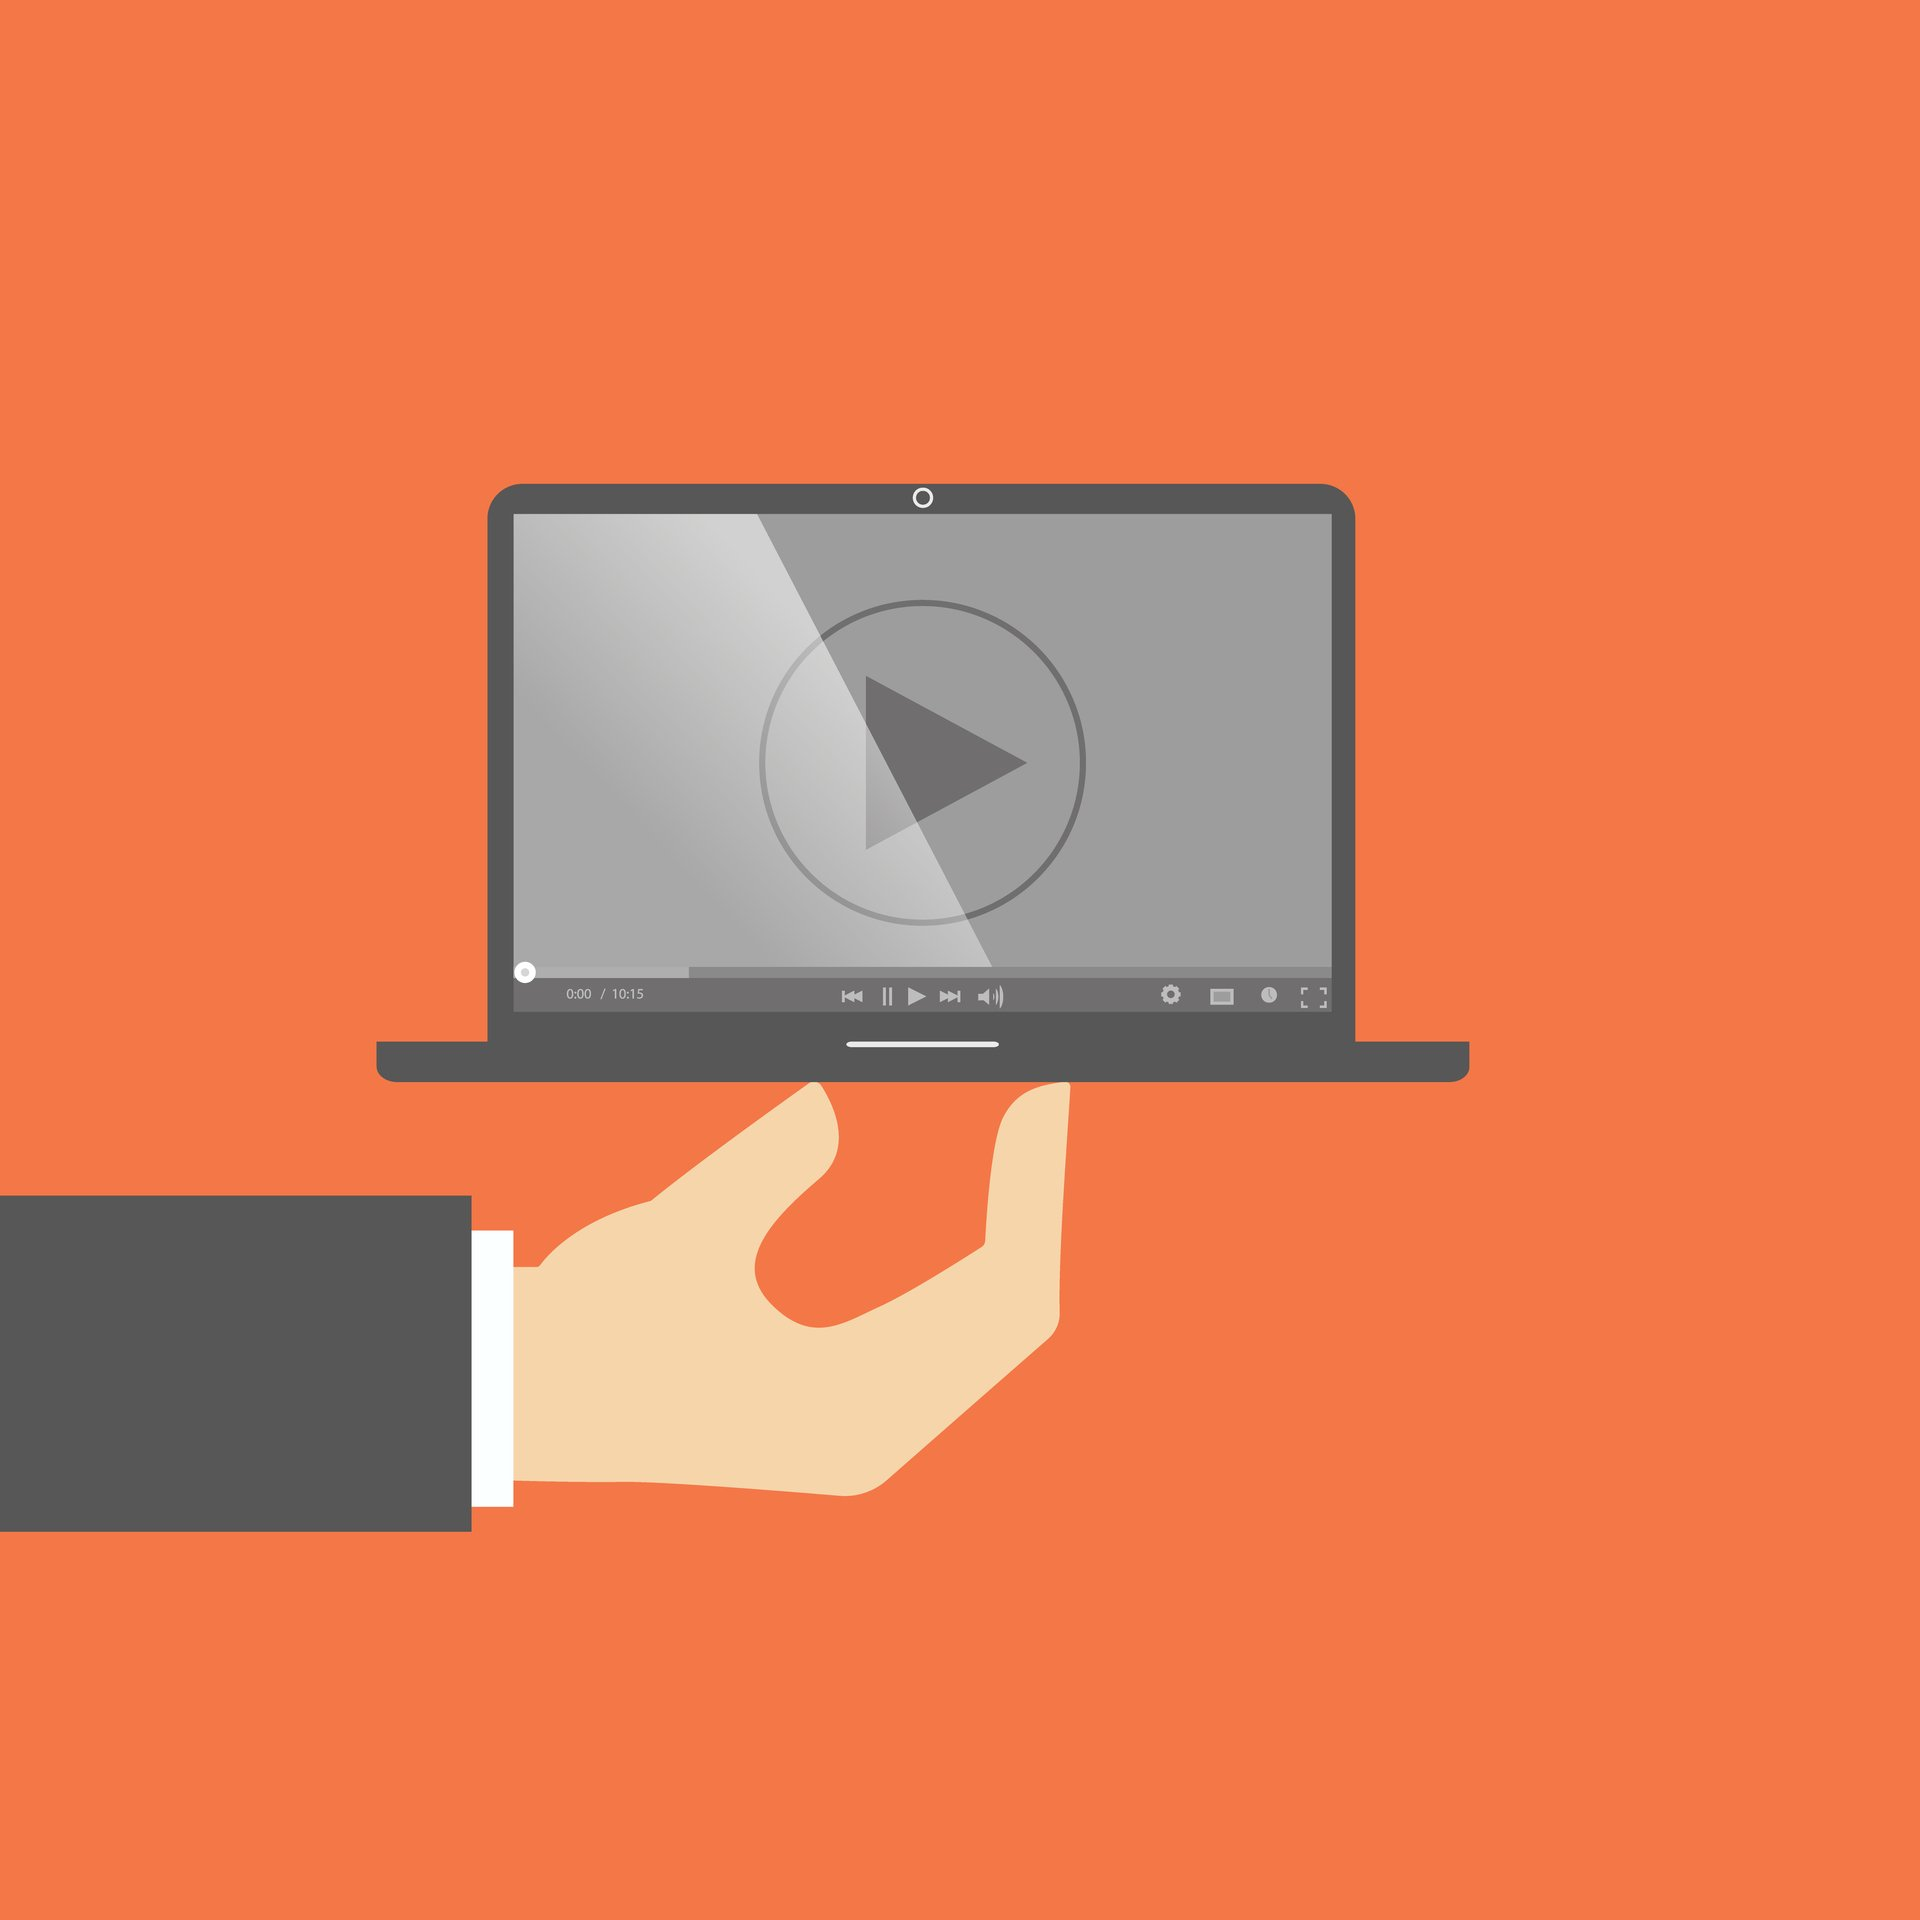 5 Tips To Create Engaging Video Based Learning